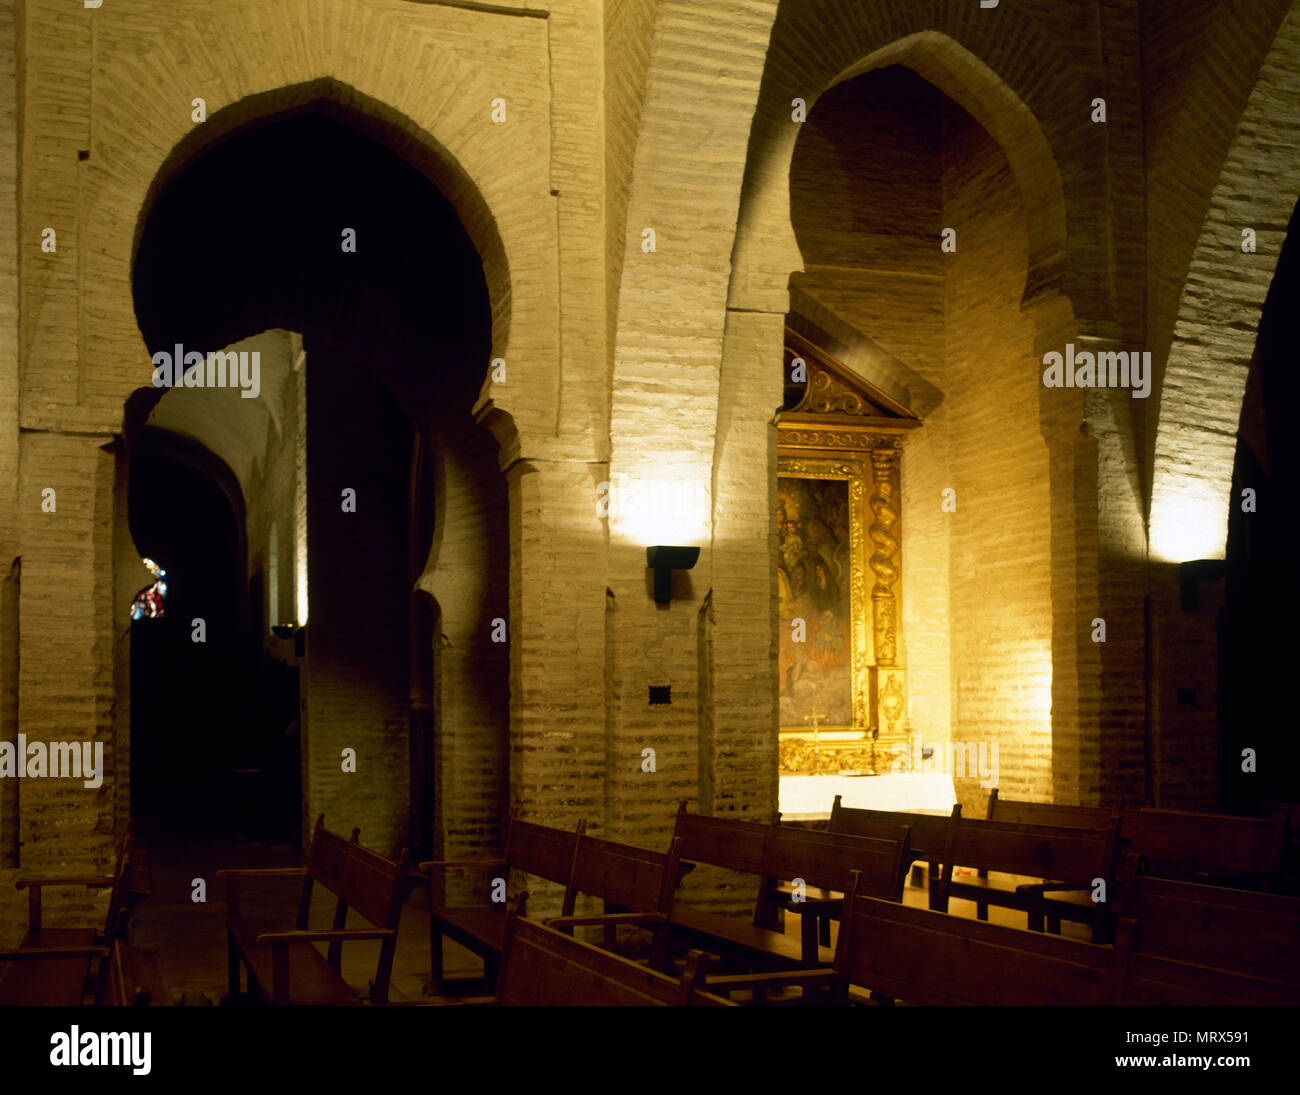 Villalba del Alcor, province of Huelva, Andalusia, Spain. Church of Saint Bartholomew. Almohad style interior of the 'ribat' remains of the 12th century and Mudejar additions 13th-16th century. The church was originally built to defend the area and brings together various styles. - Stock Image